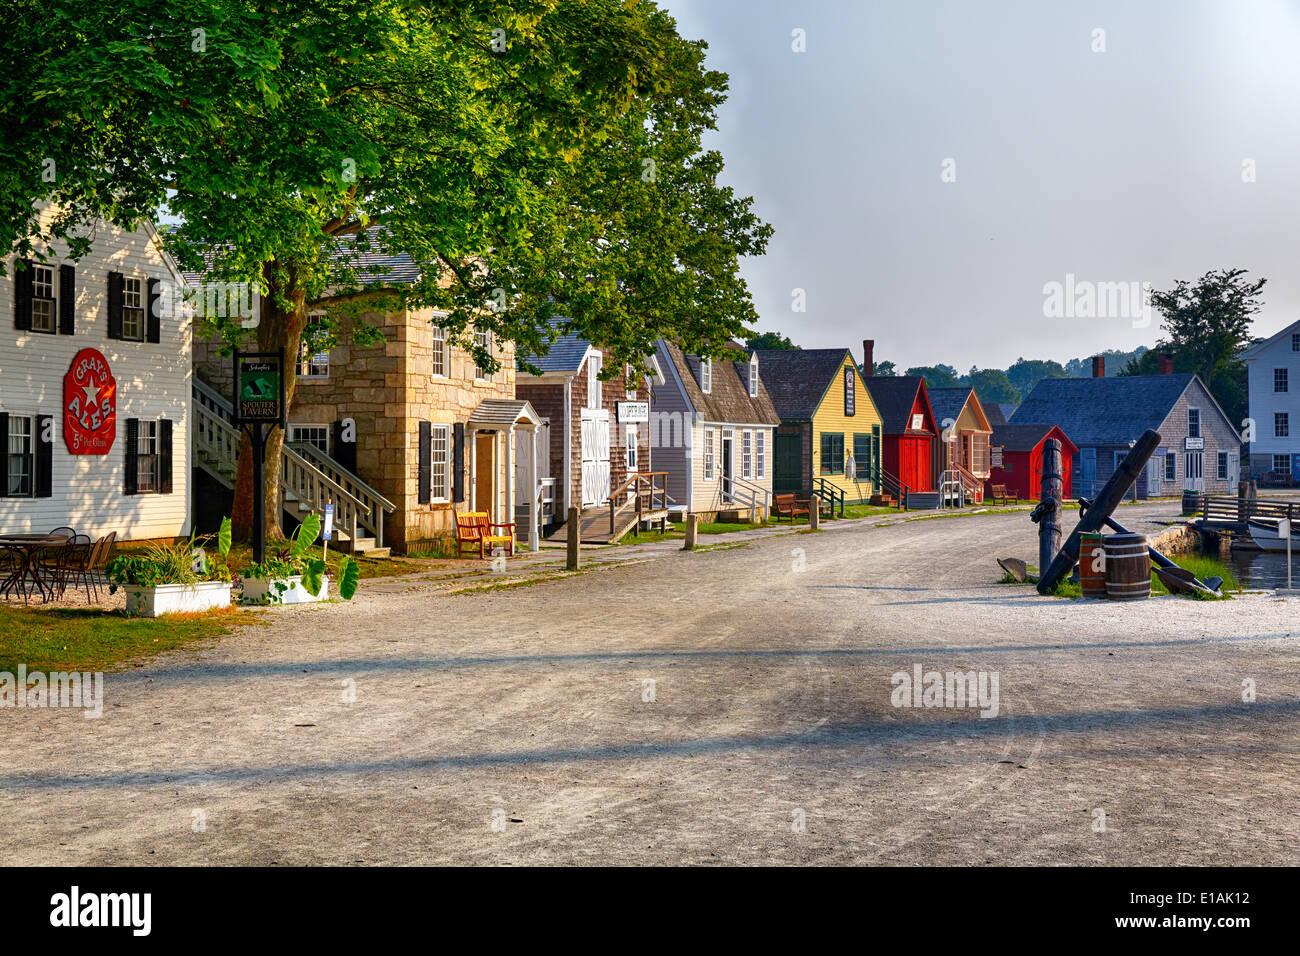 Historic Harbor Houses in Mystic Seaport, Connecticut - Stock Image